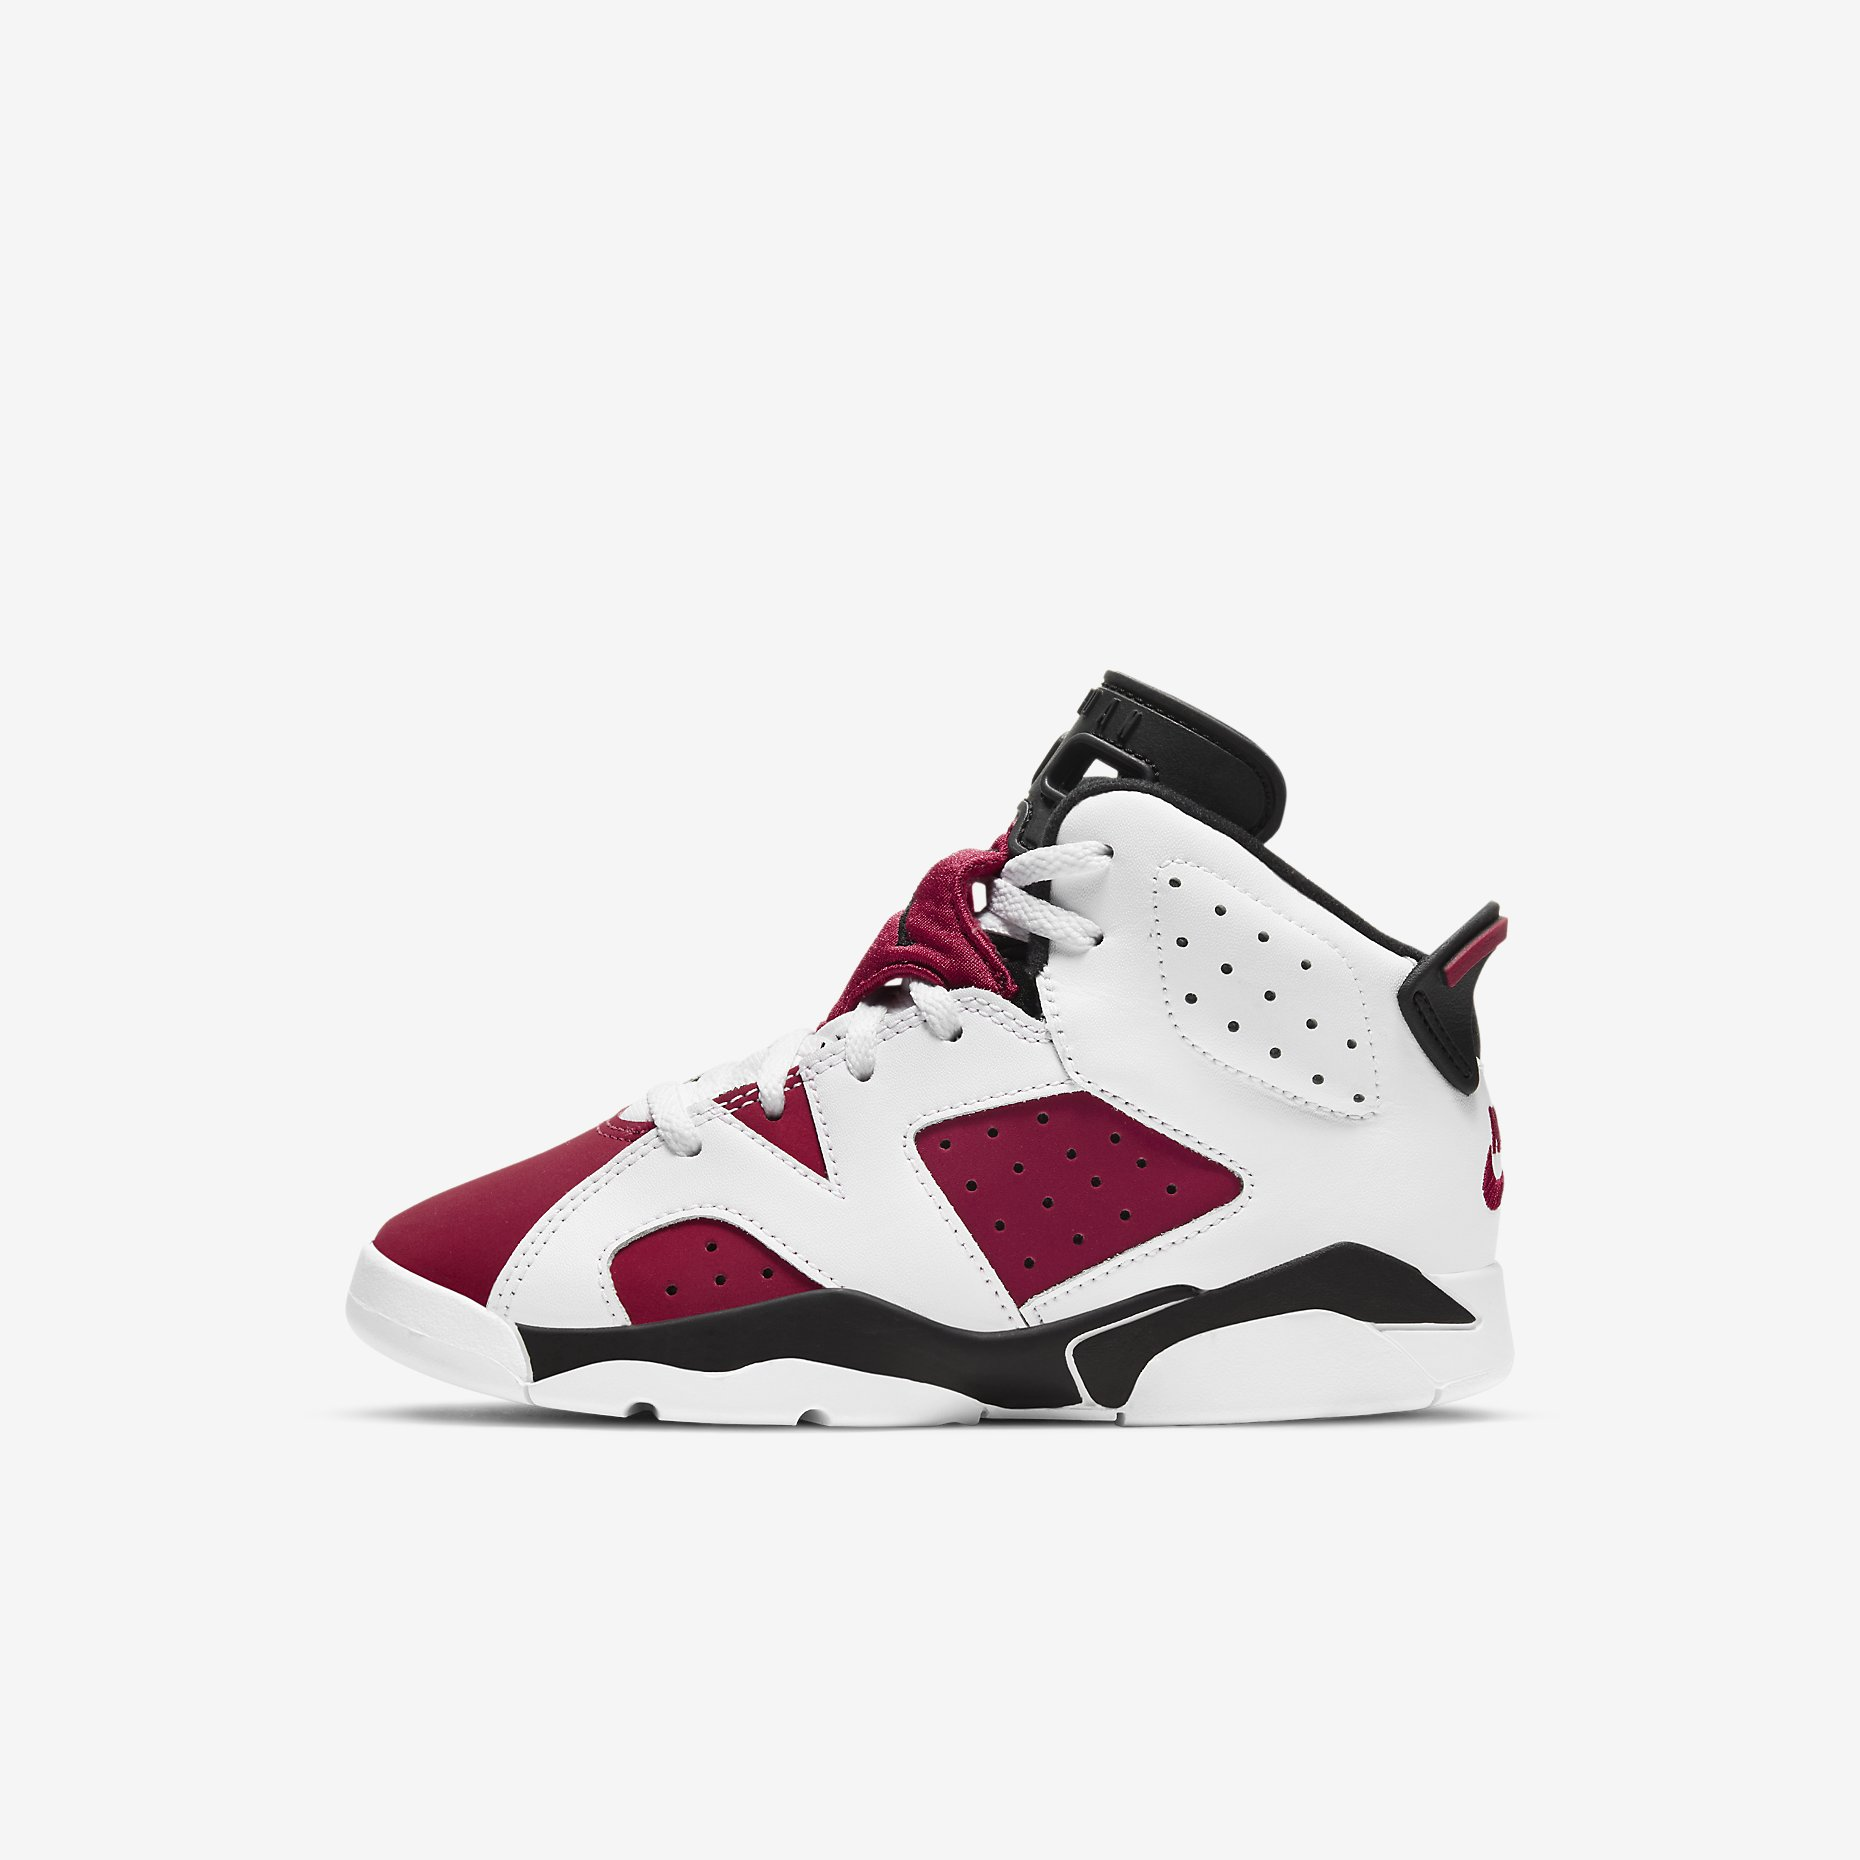 Air Jordan 6 Retro PS 'Carmine' 2021}